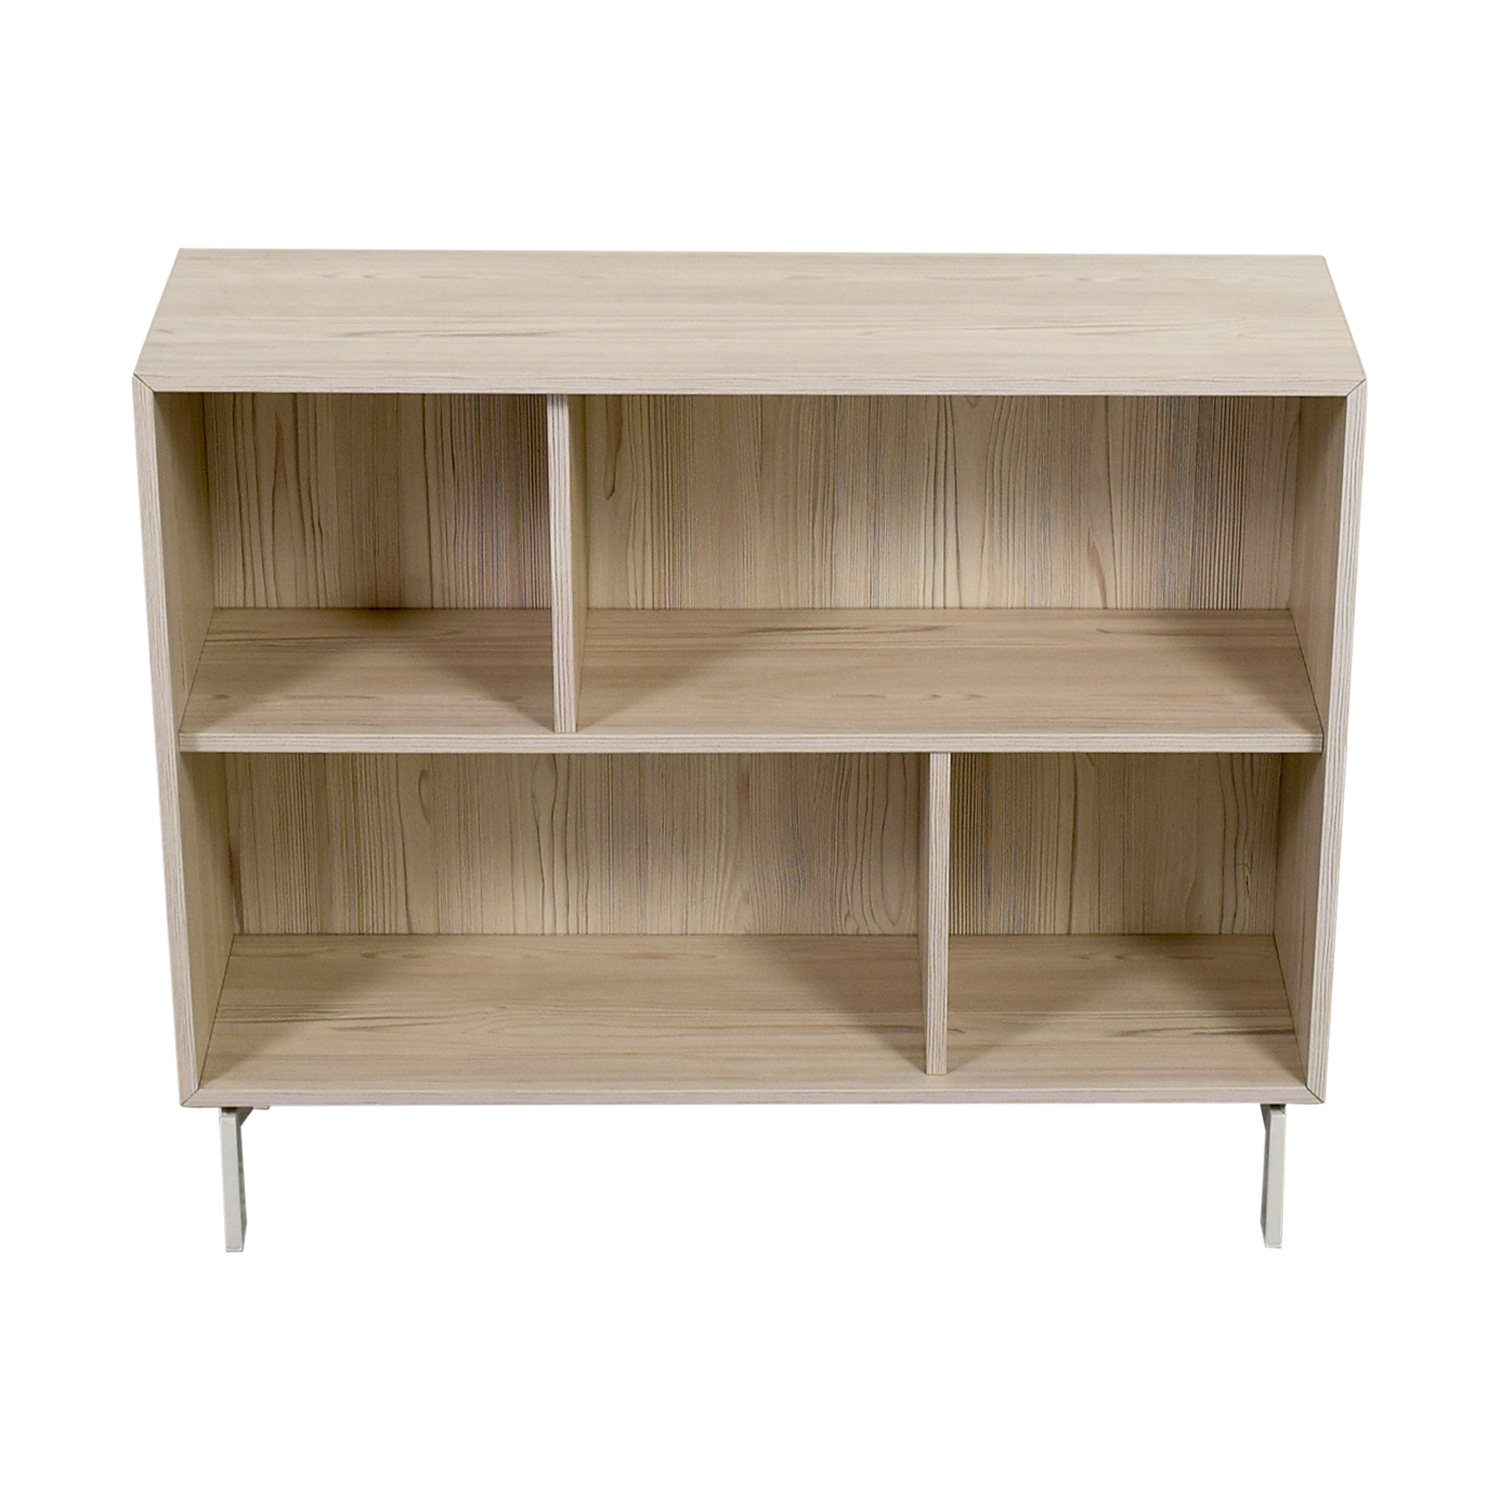 IKEA Valje Natural Shelf / Bookcases & Shelving